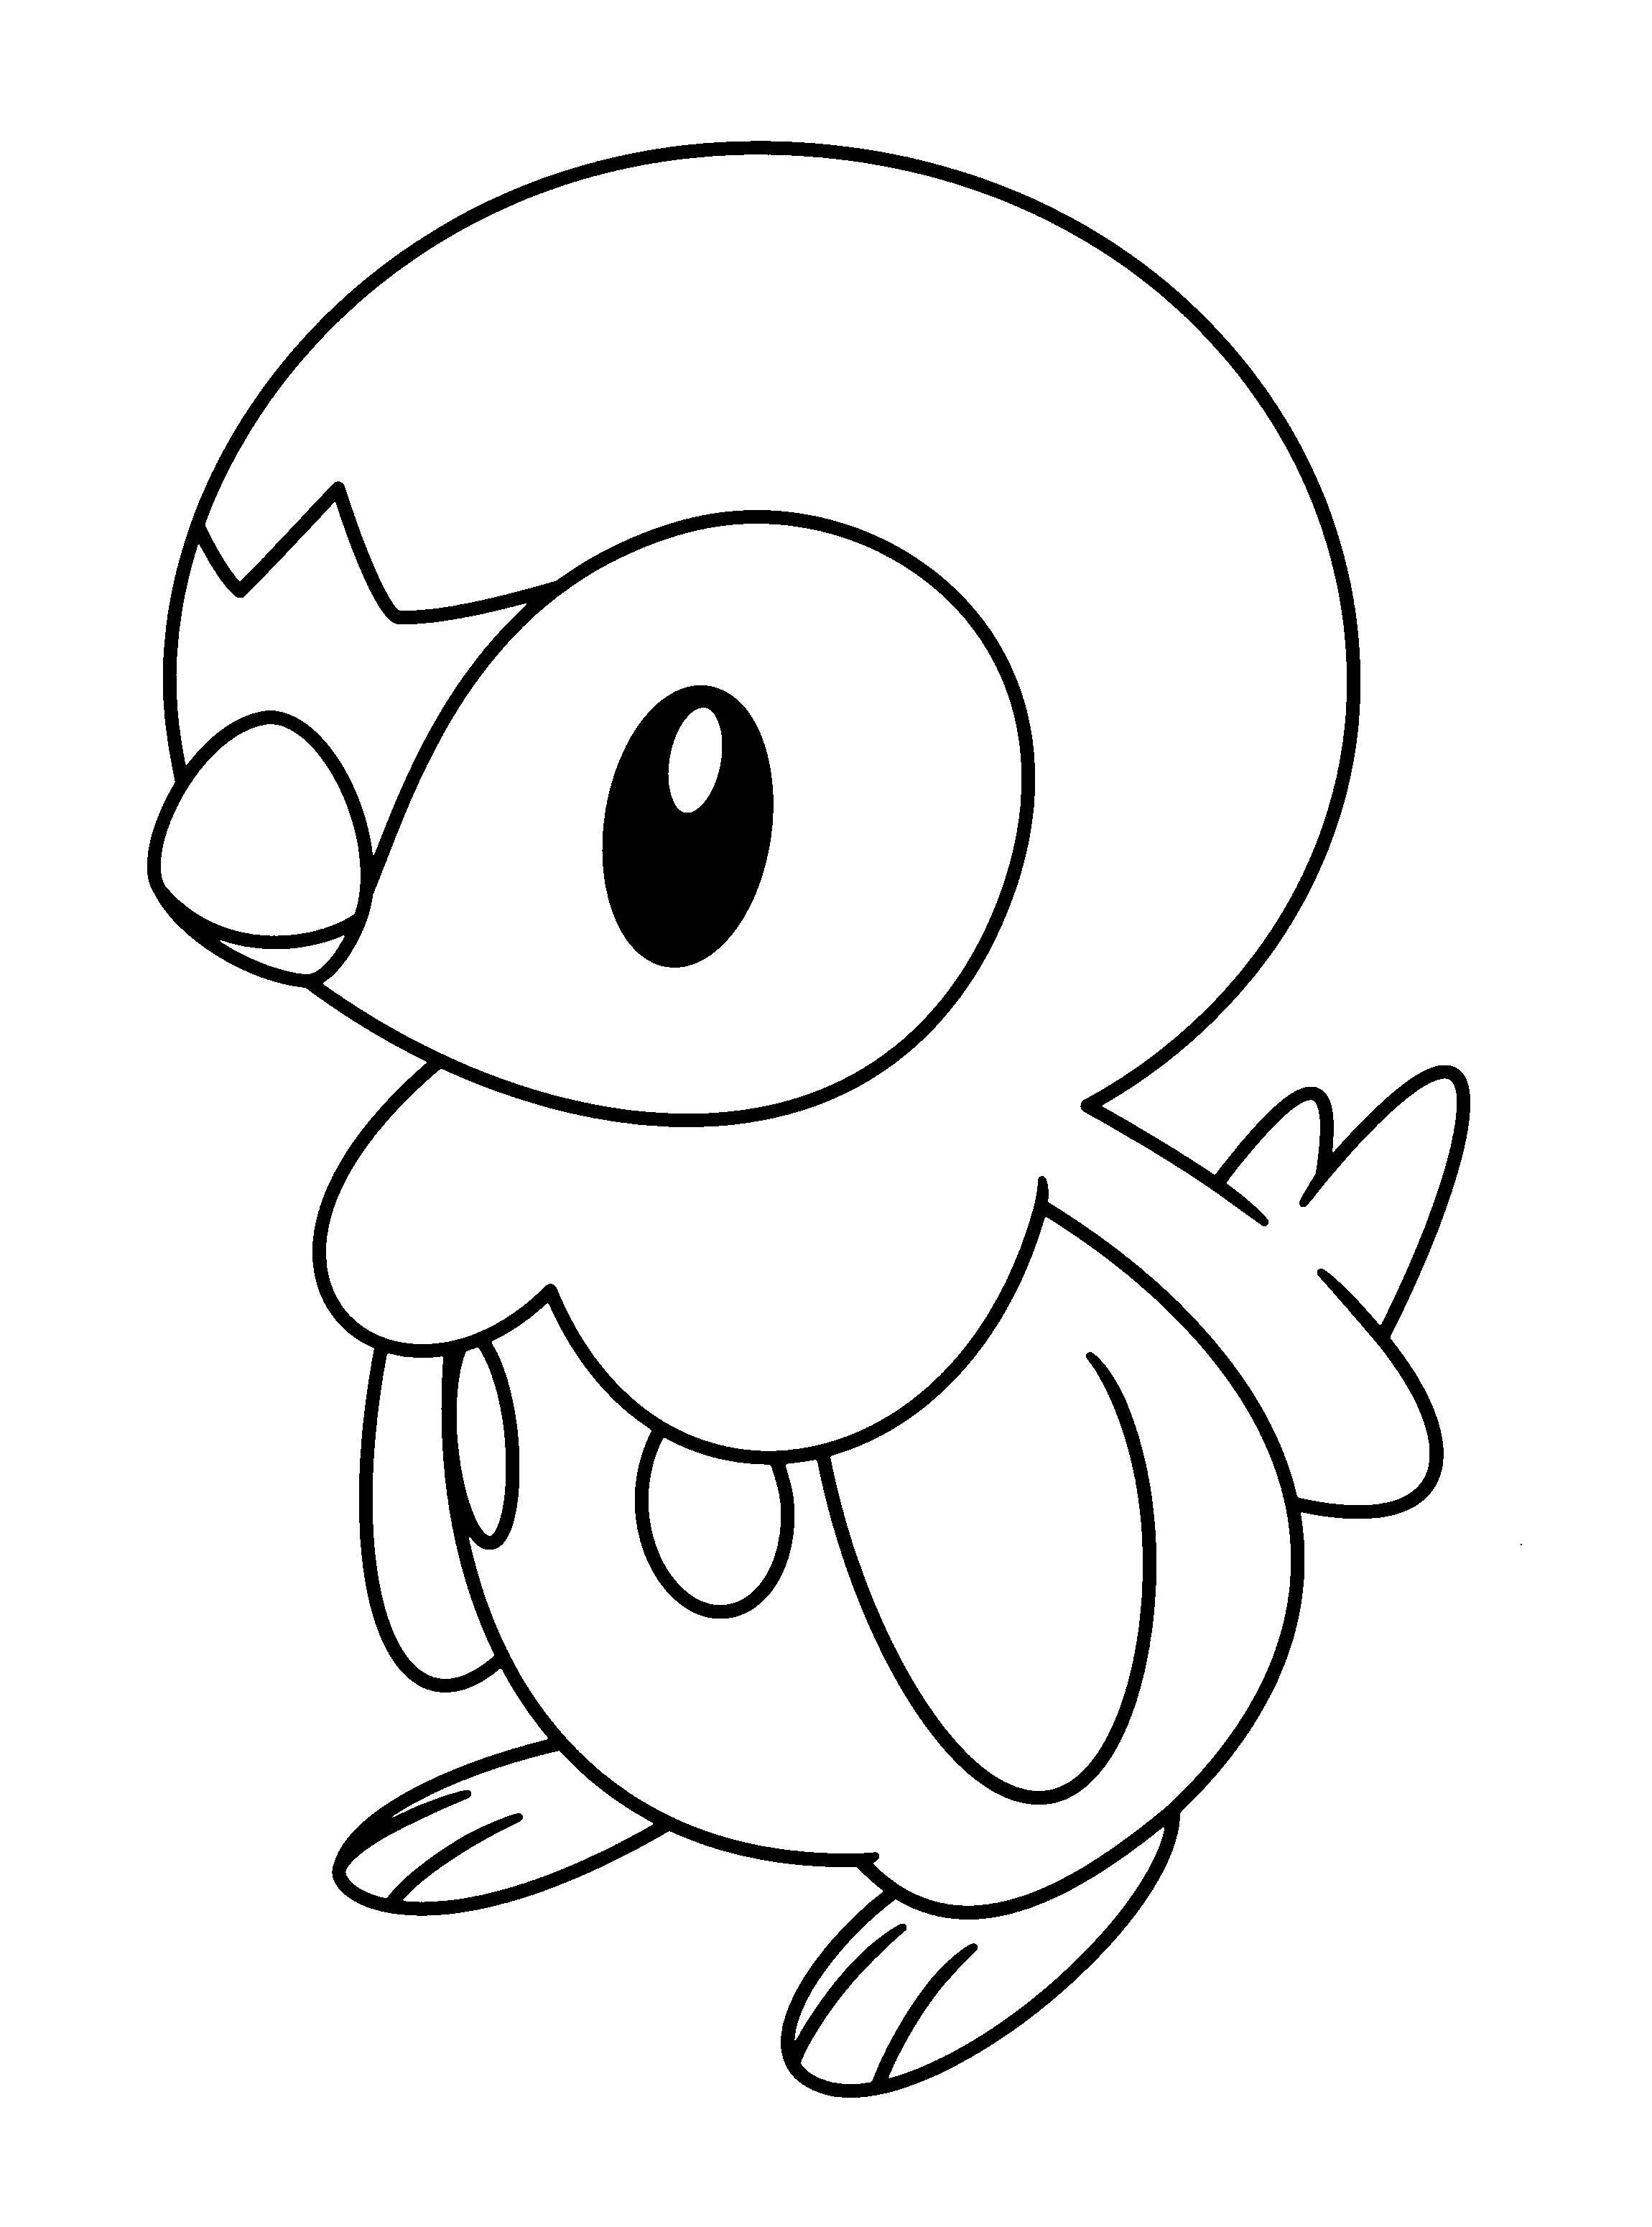 Free Coloring Pictures To Print Pokemon Coloring Pages Pokemon